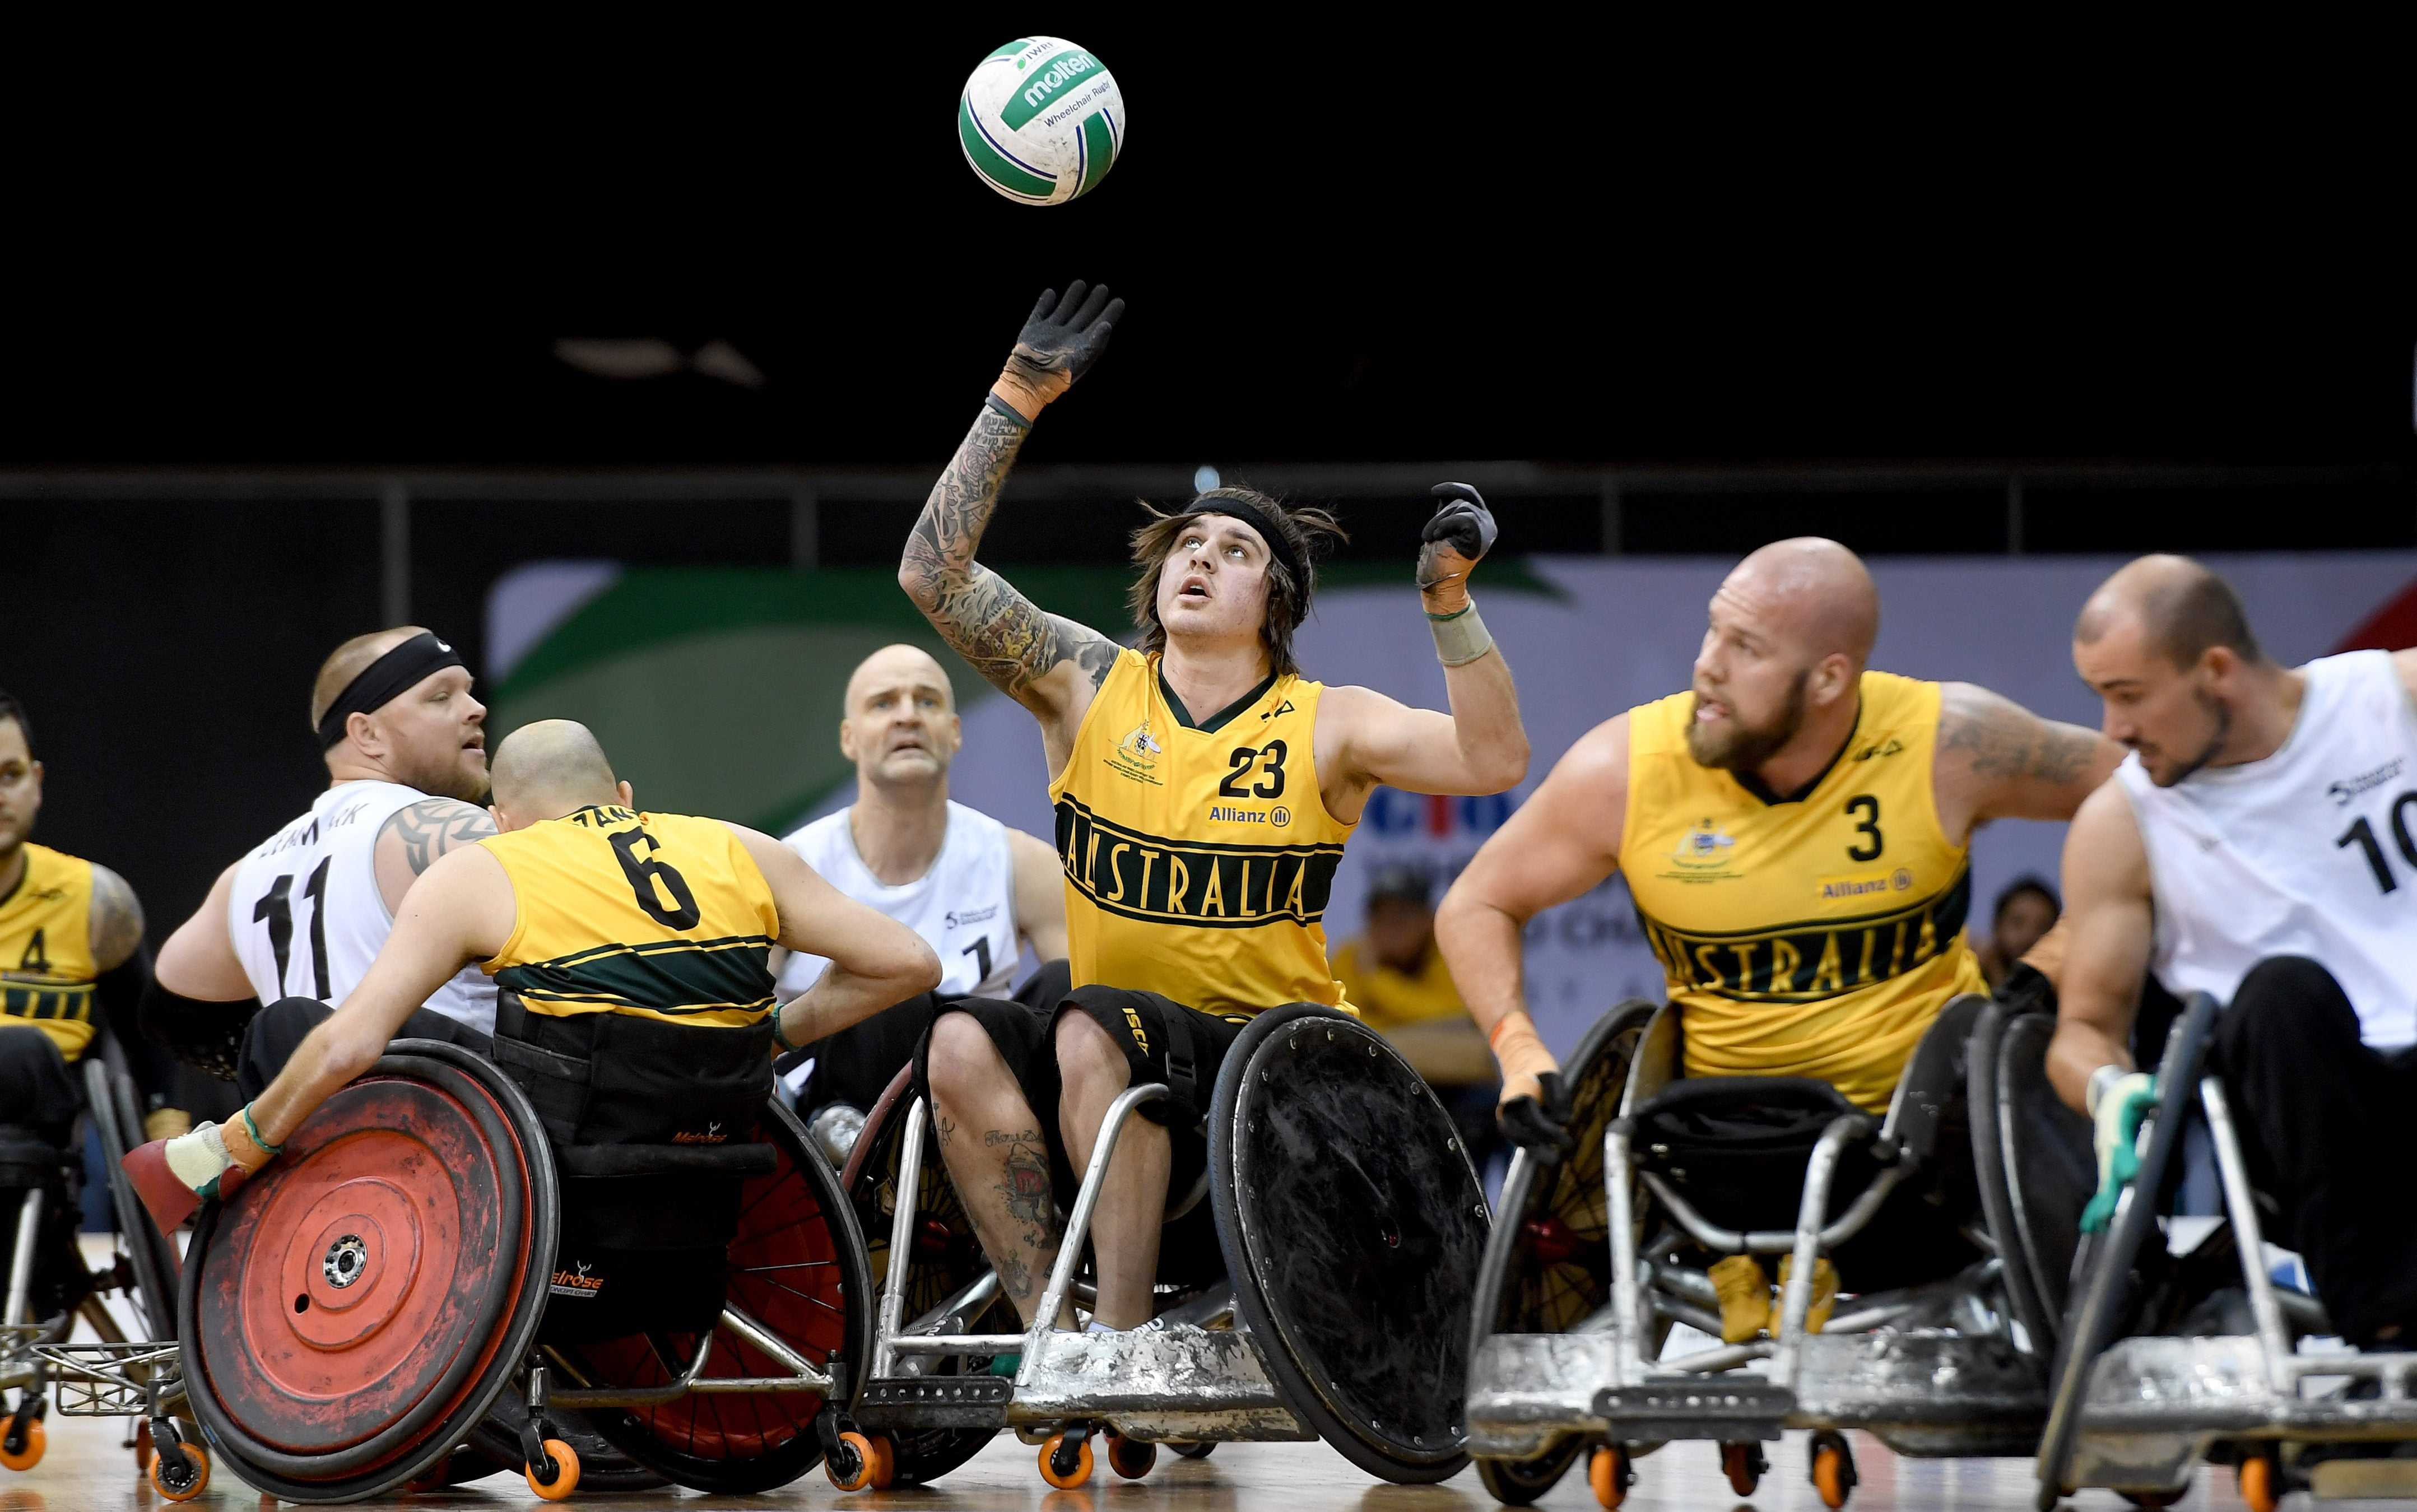 Three from three for Australia at Wheelchair Rugby World Championships